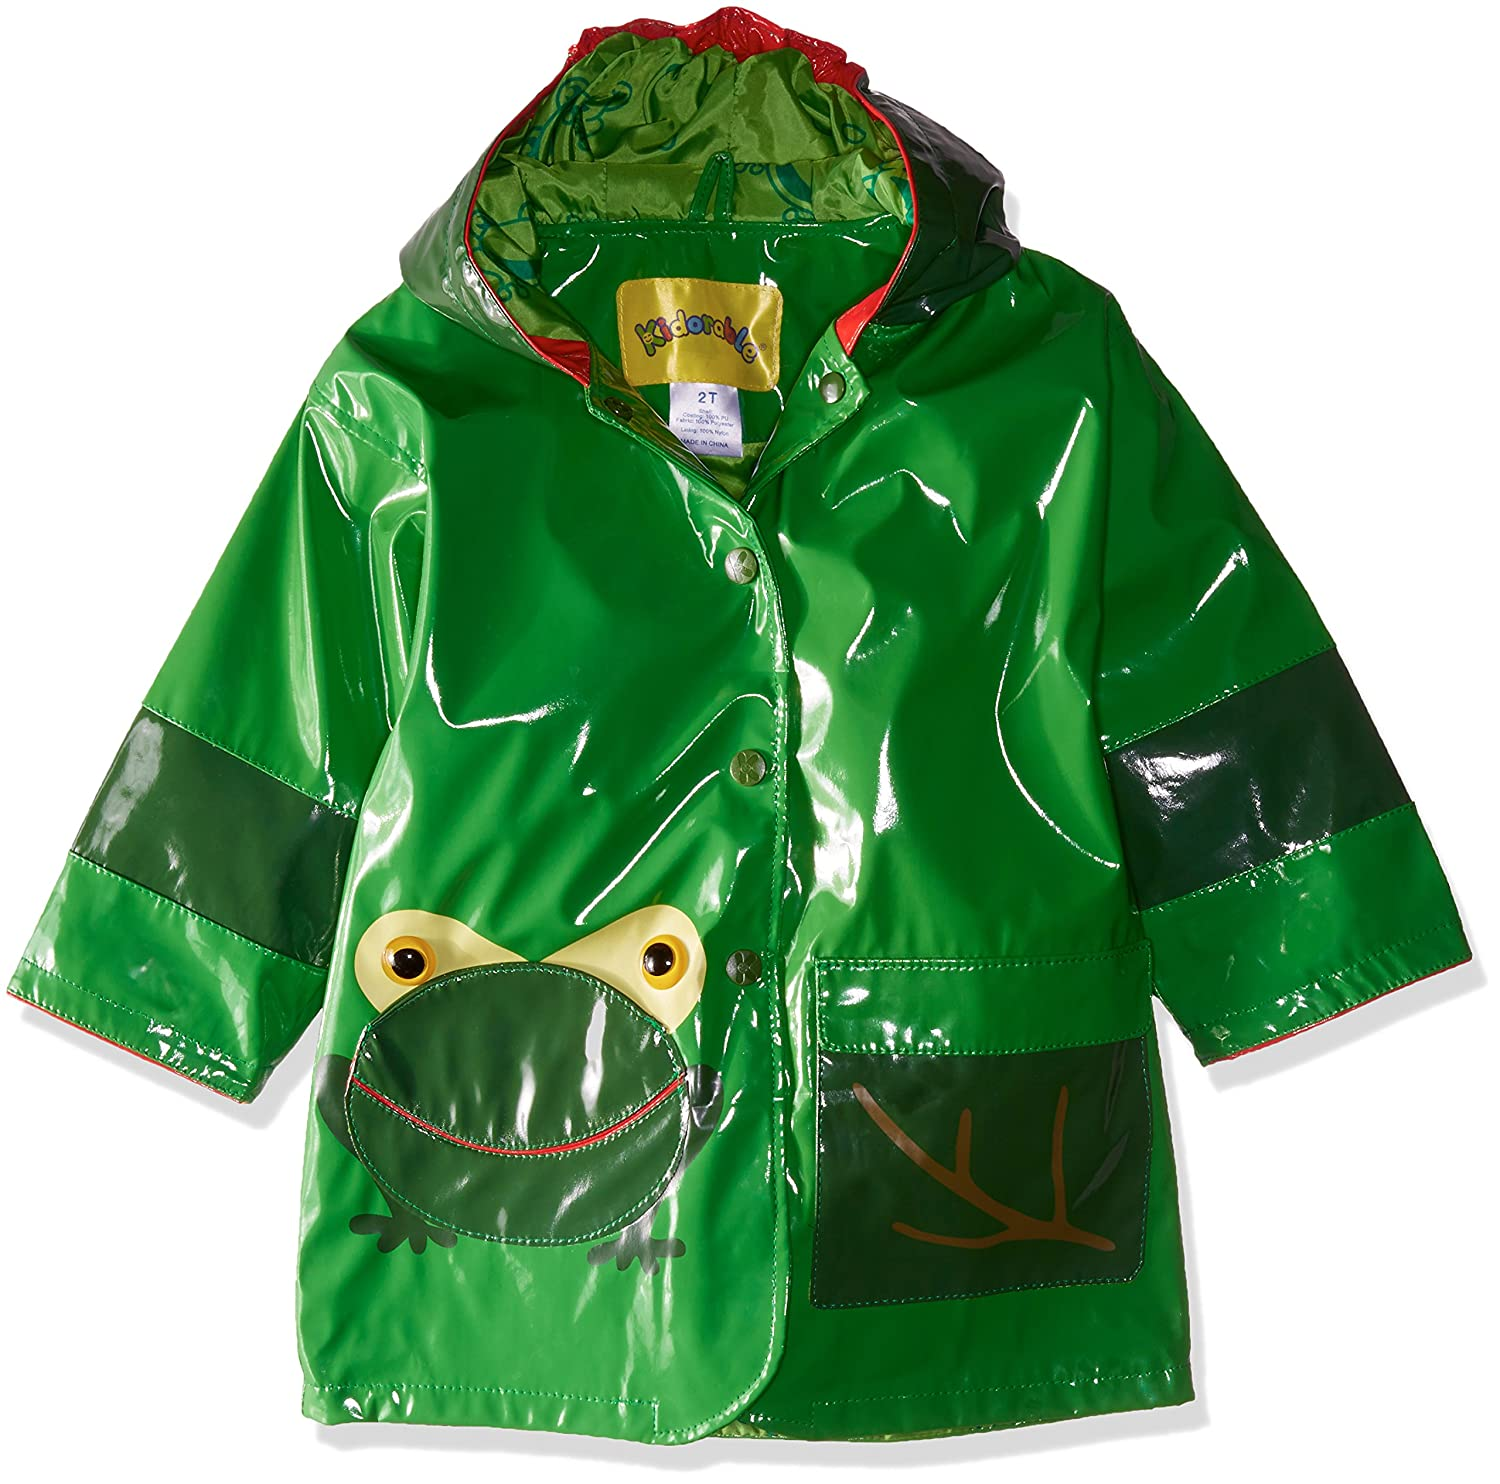 0e17f5737 Amazon.com: Kidorable Green Frog PU All-Weather Raincoat for Boys With Fun  Frog Mouth Pocket: Clothing